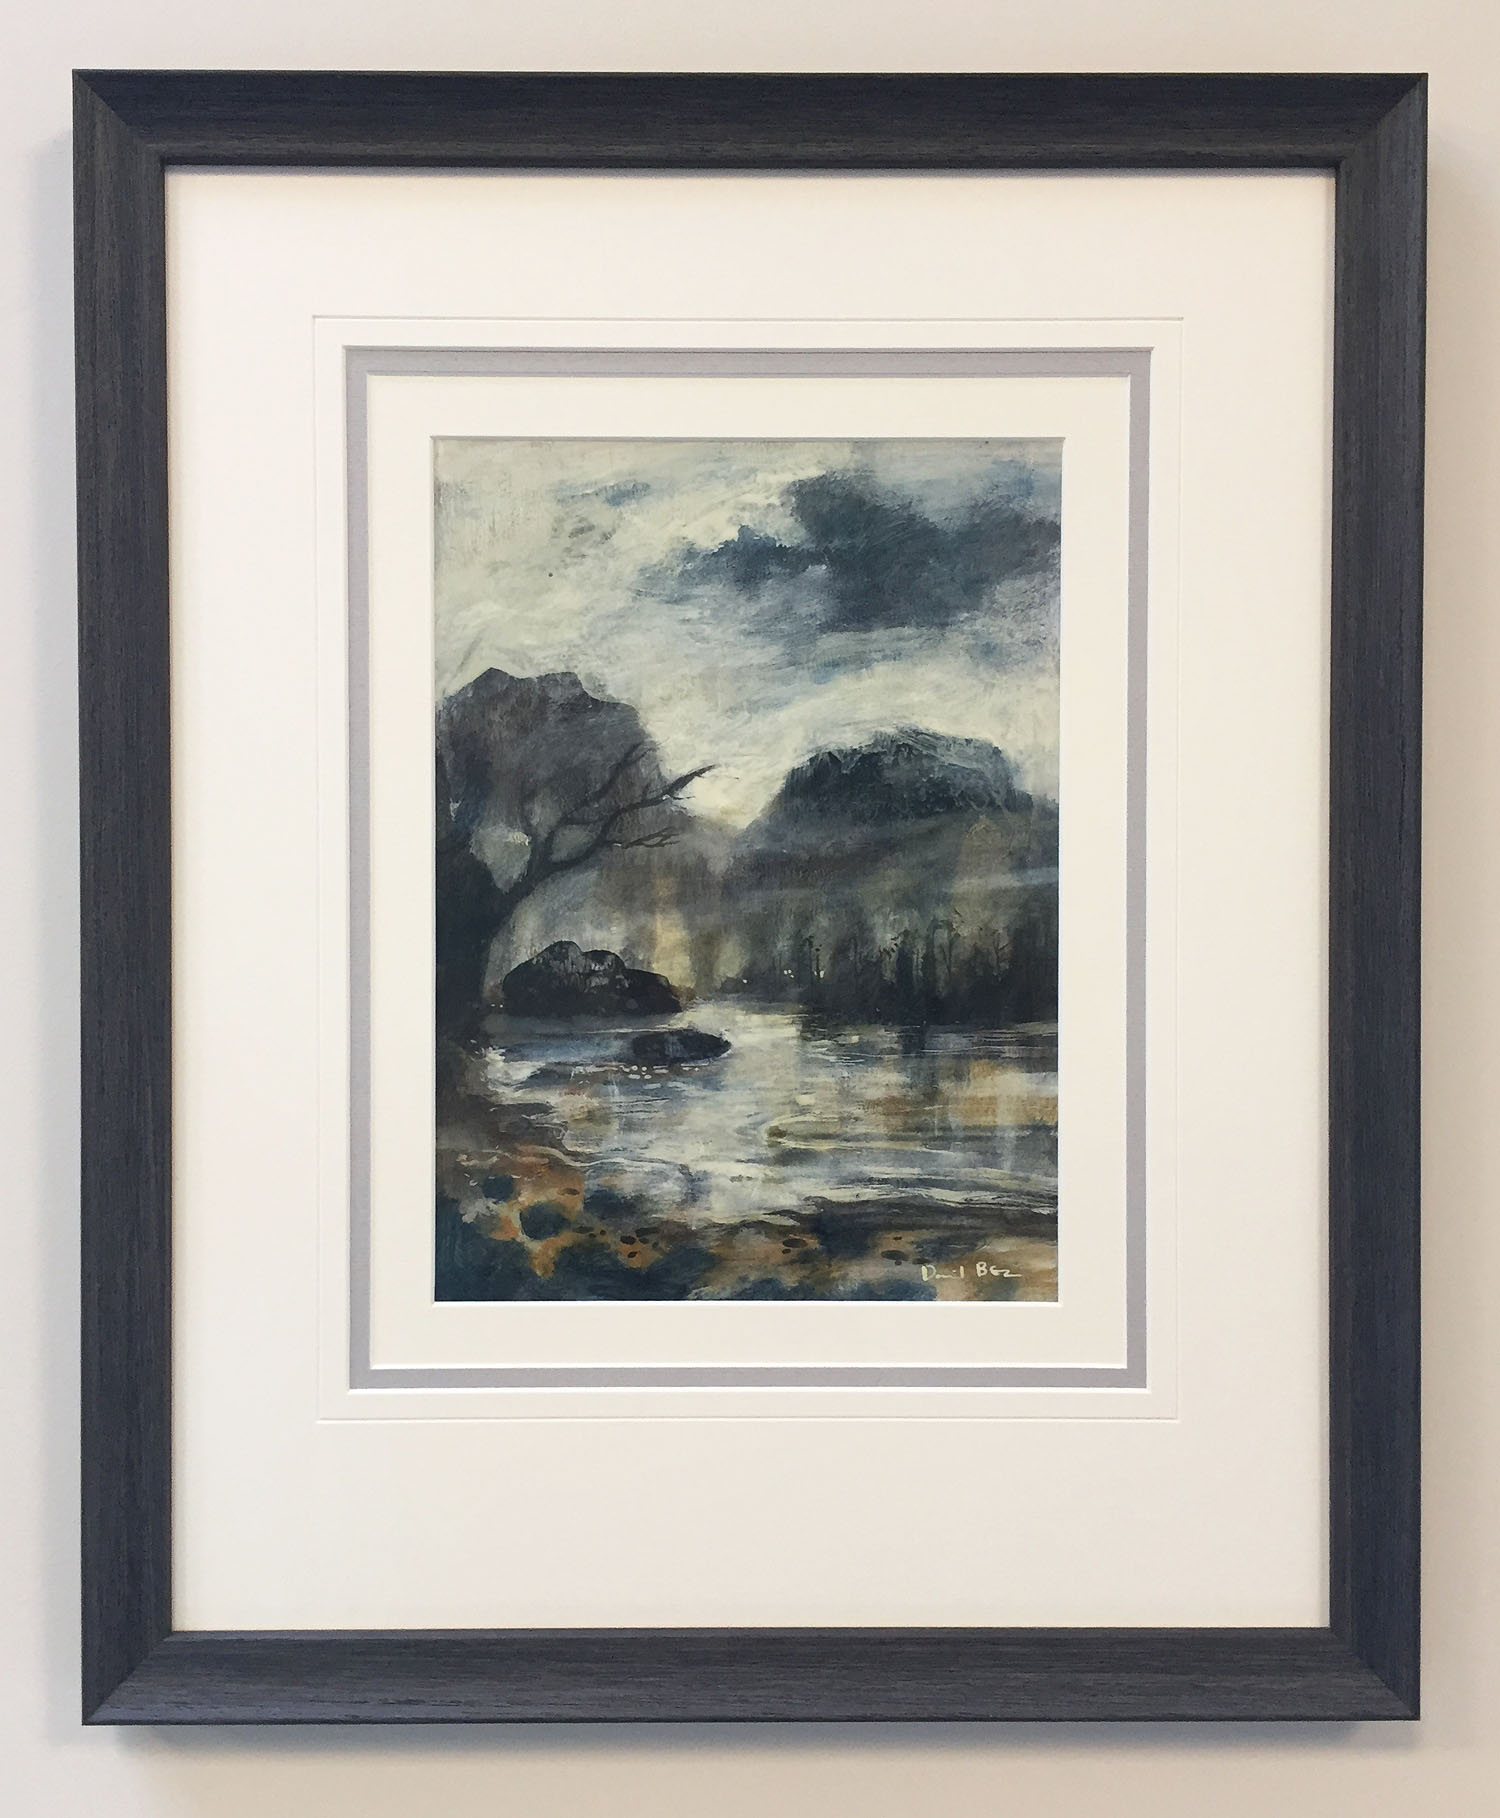 The Rock Pool by David Bez, Landscape | Water | Northern